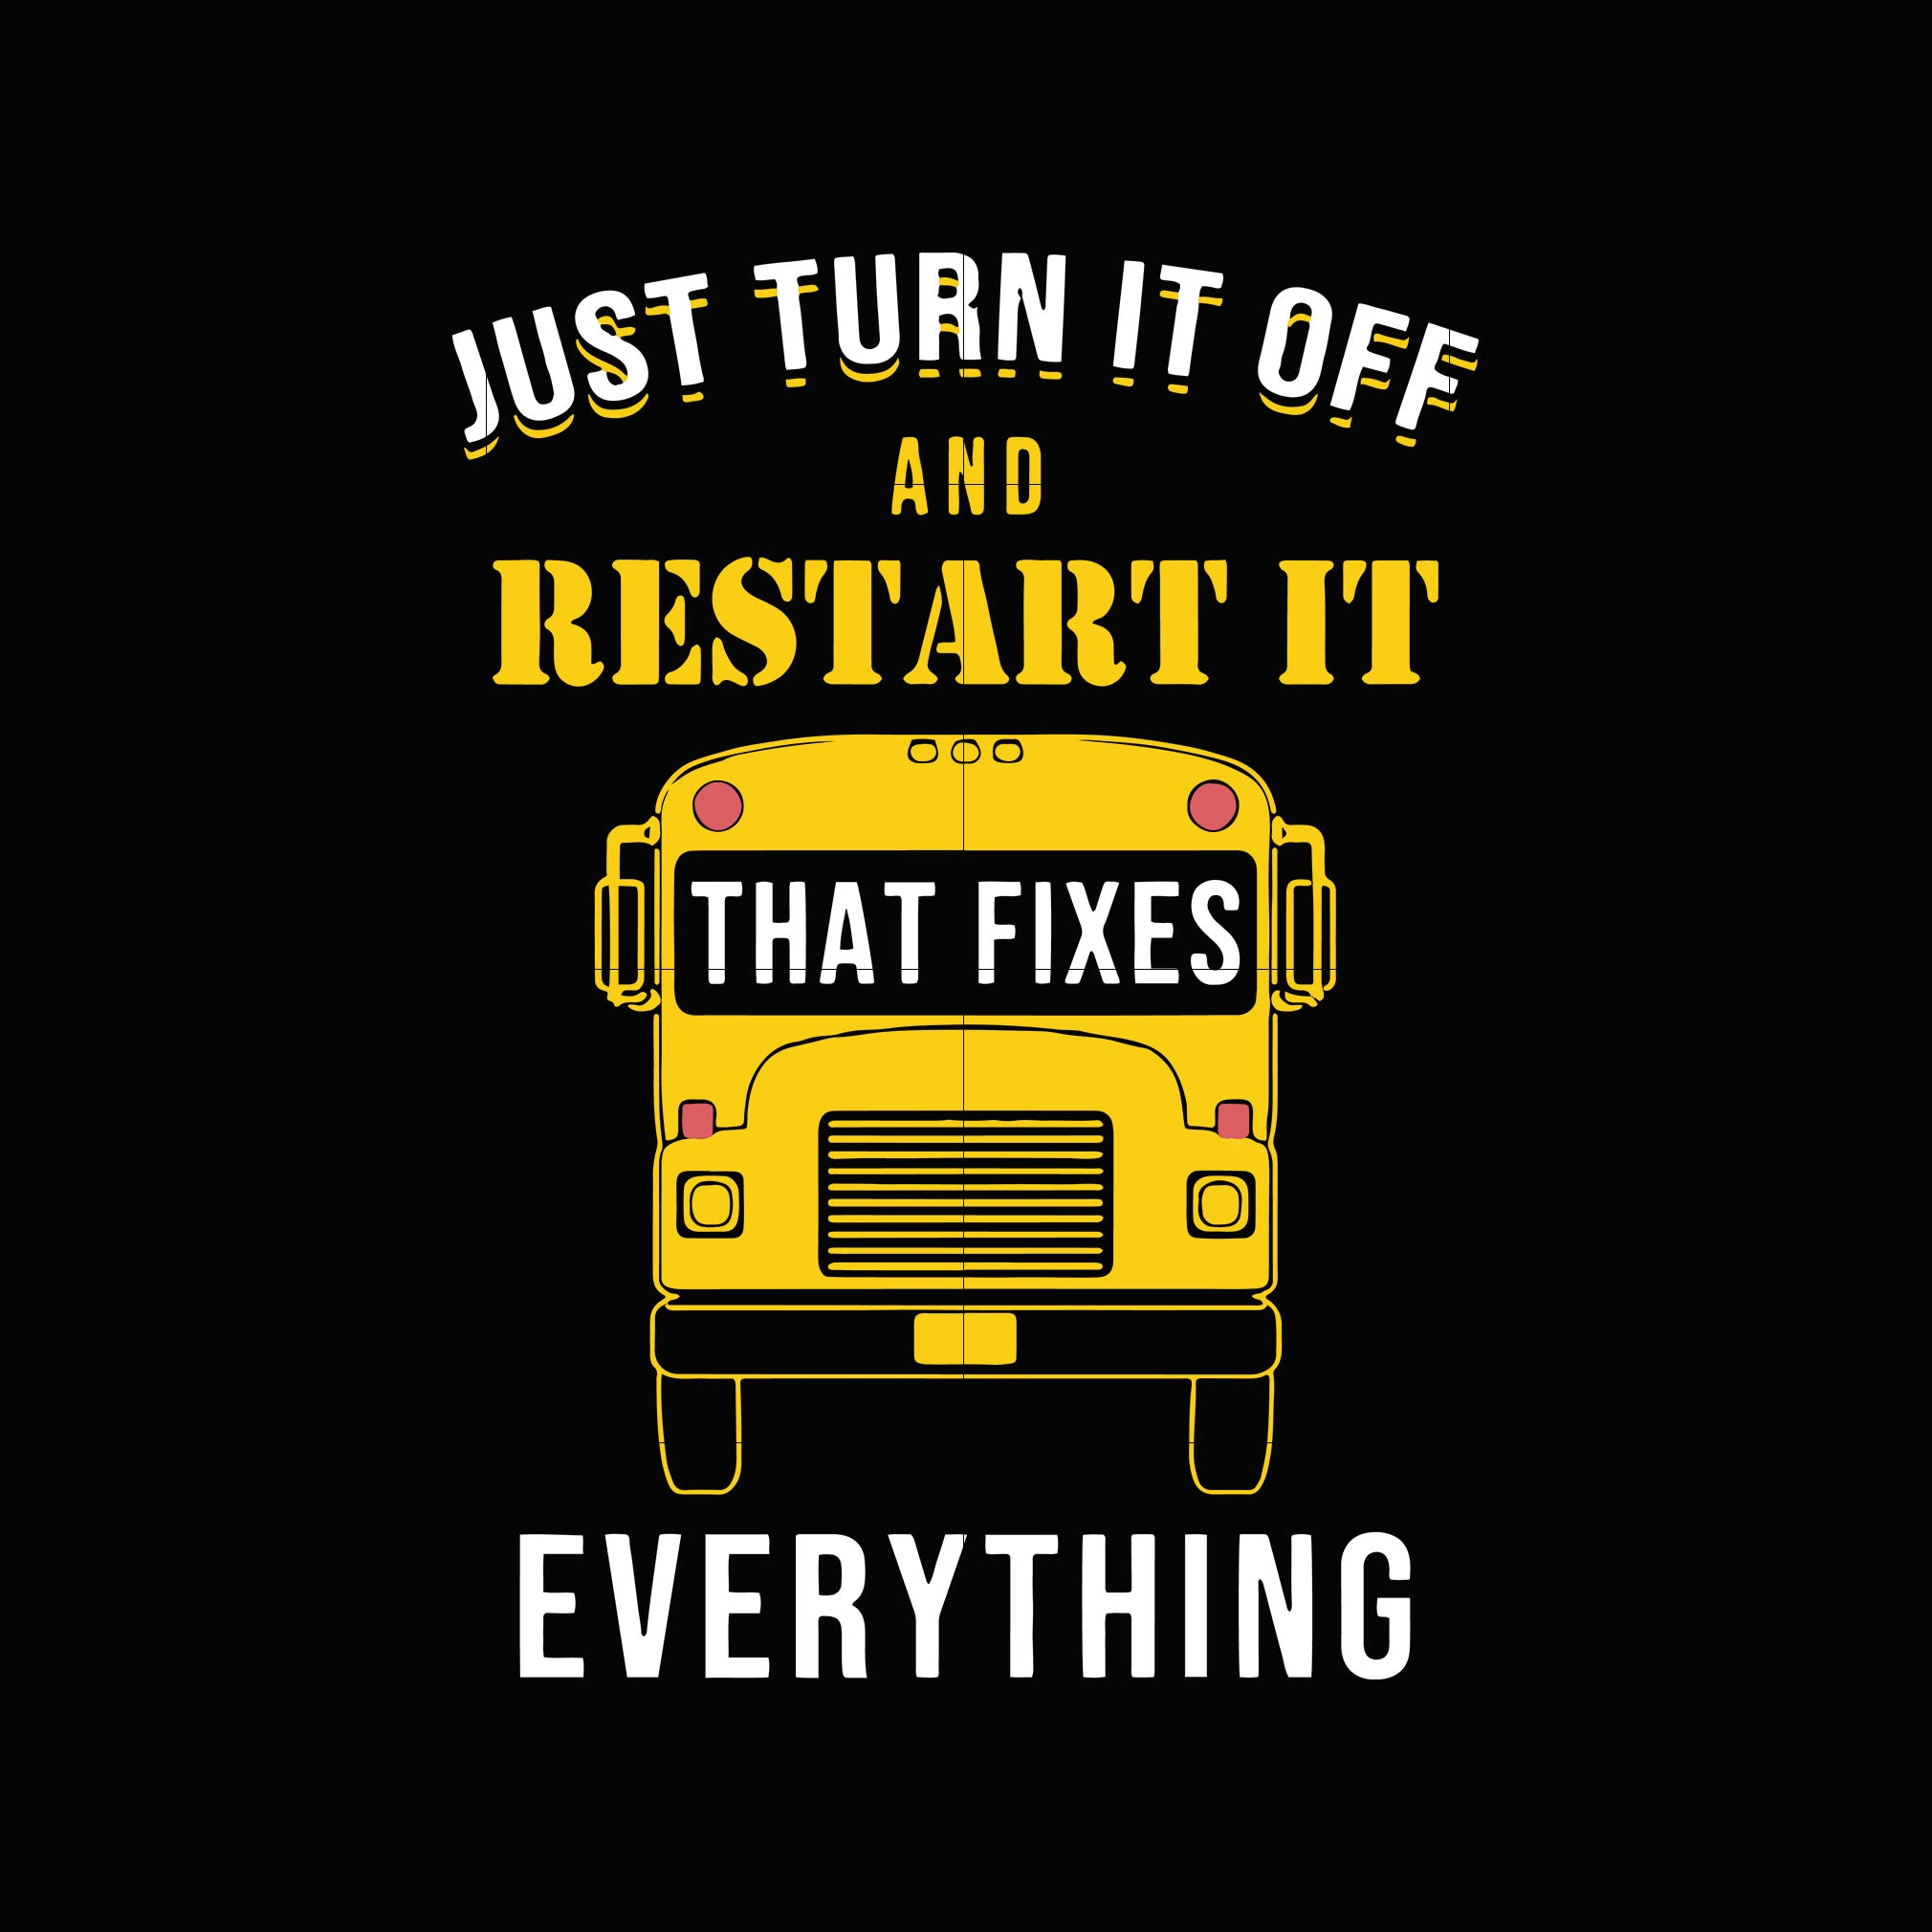 Just turn it off and restart it that fixes everything svg ,dxf,eps,png digital file